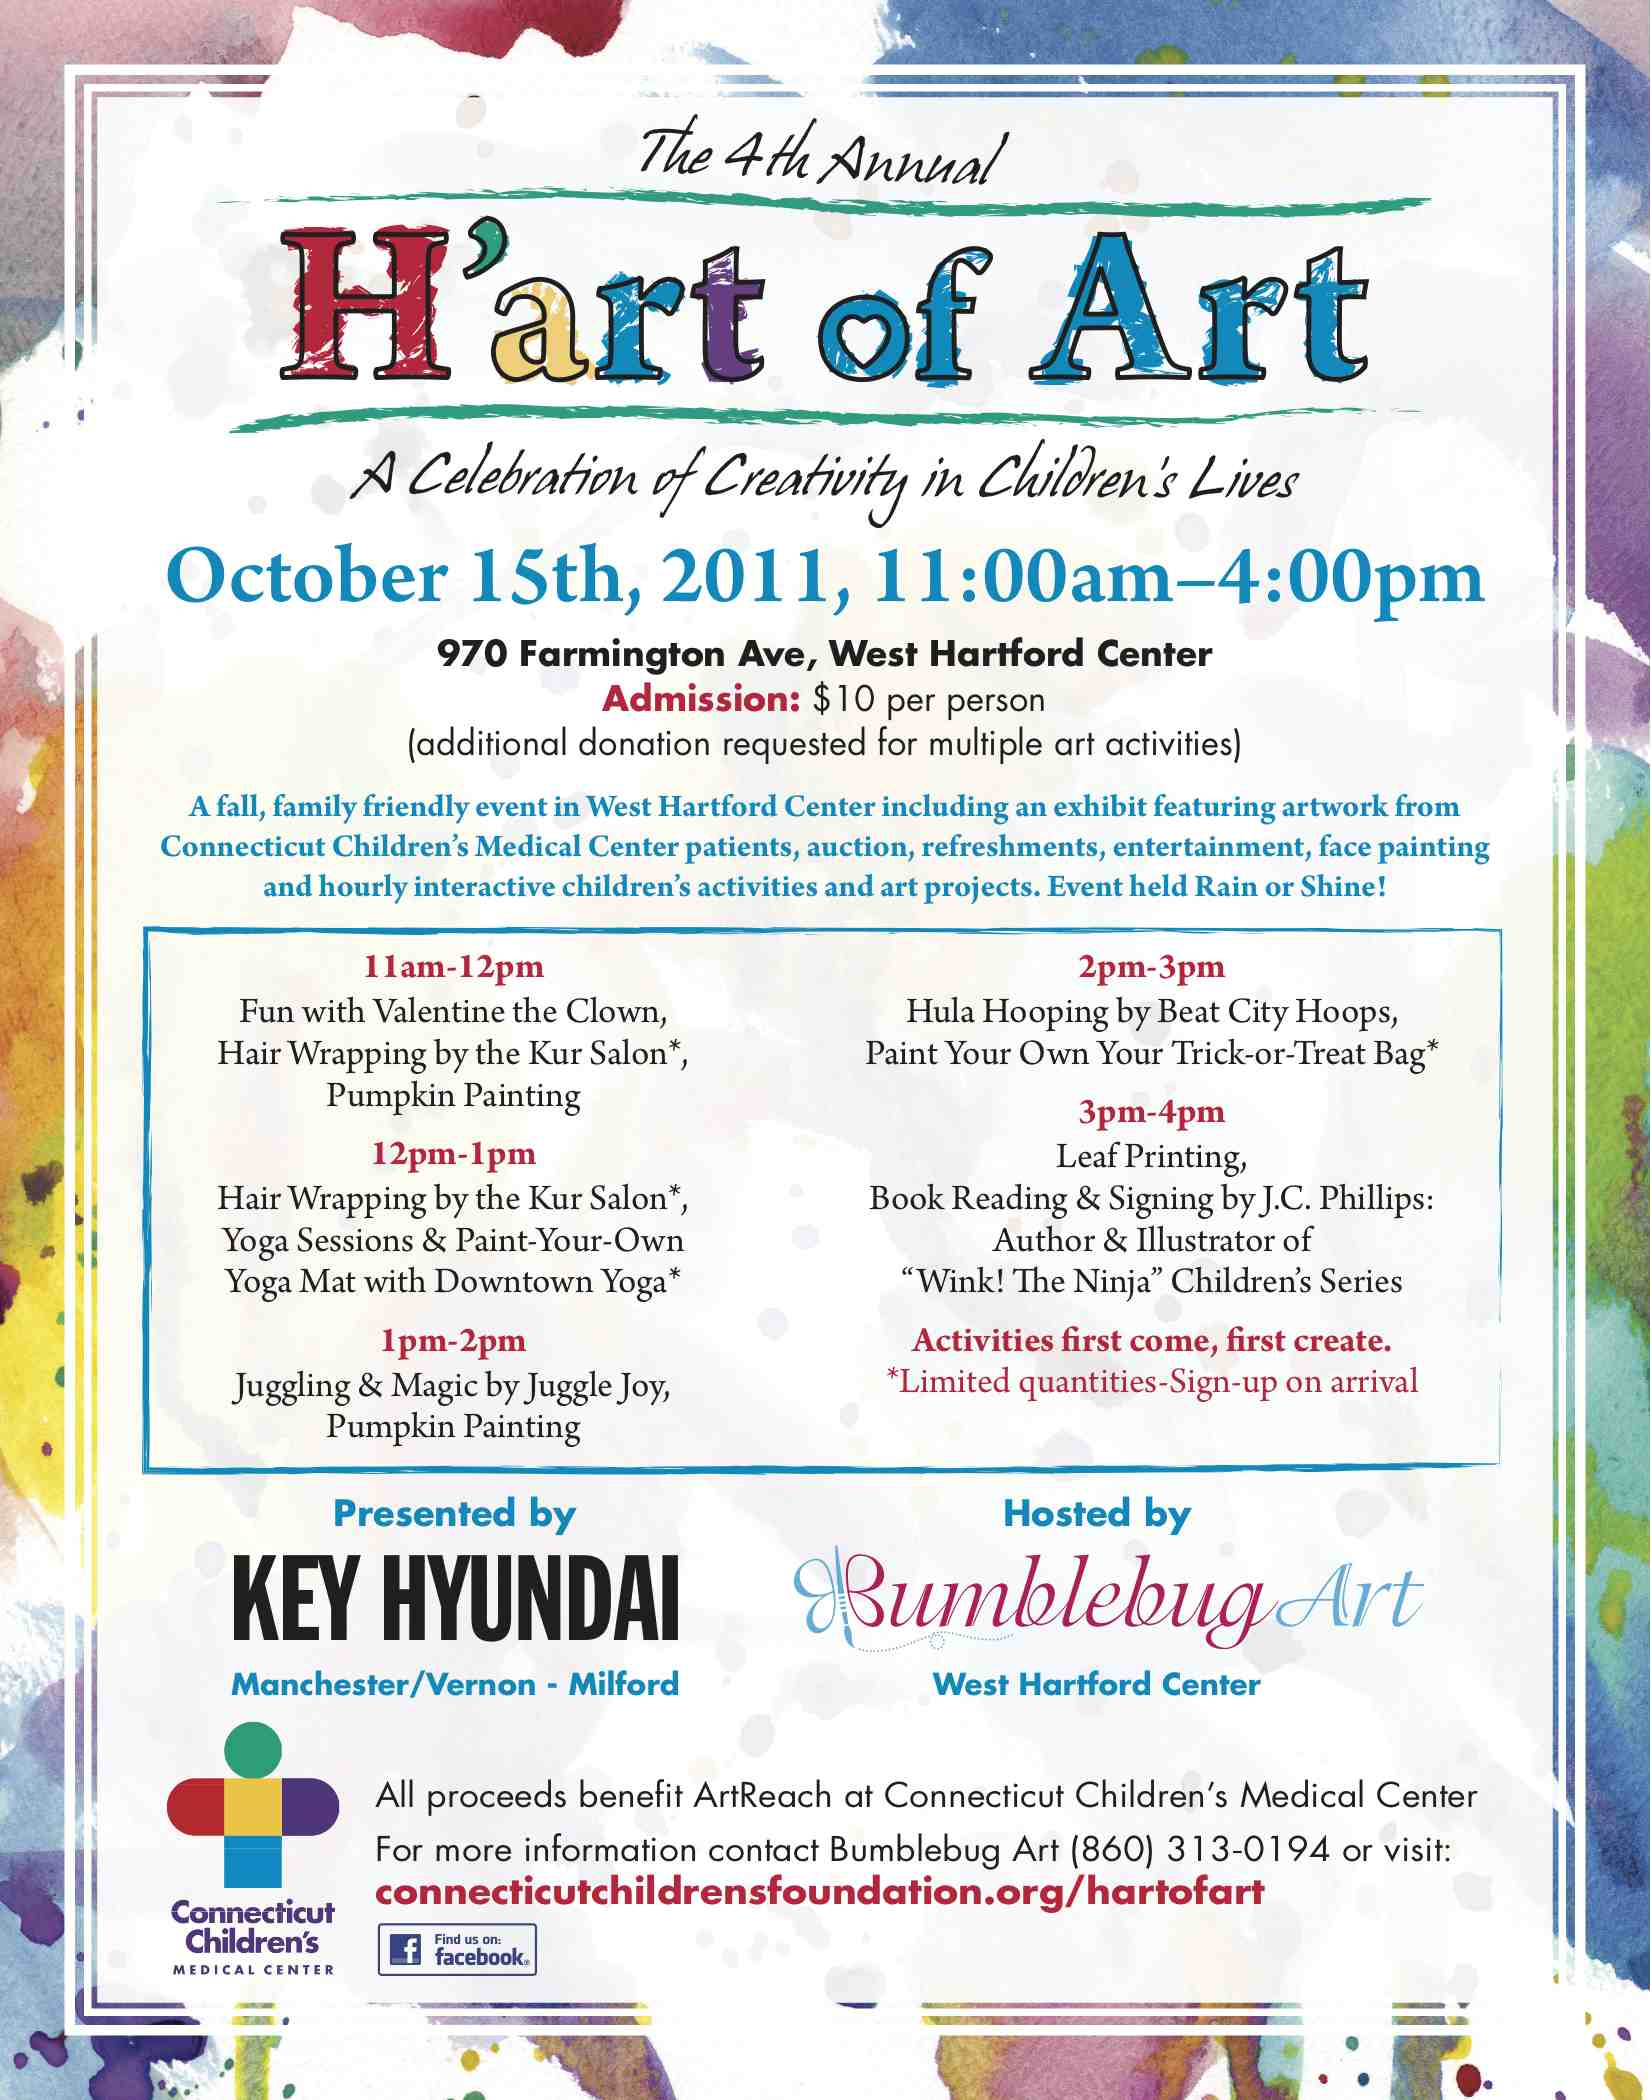 H'Art of Art & Connecticut Children's Medical Center & Key Hyundai